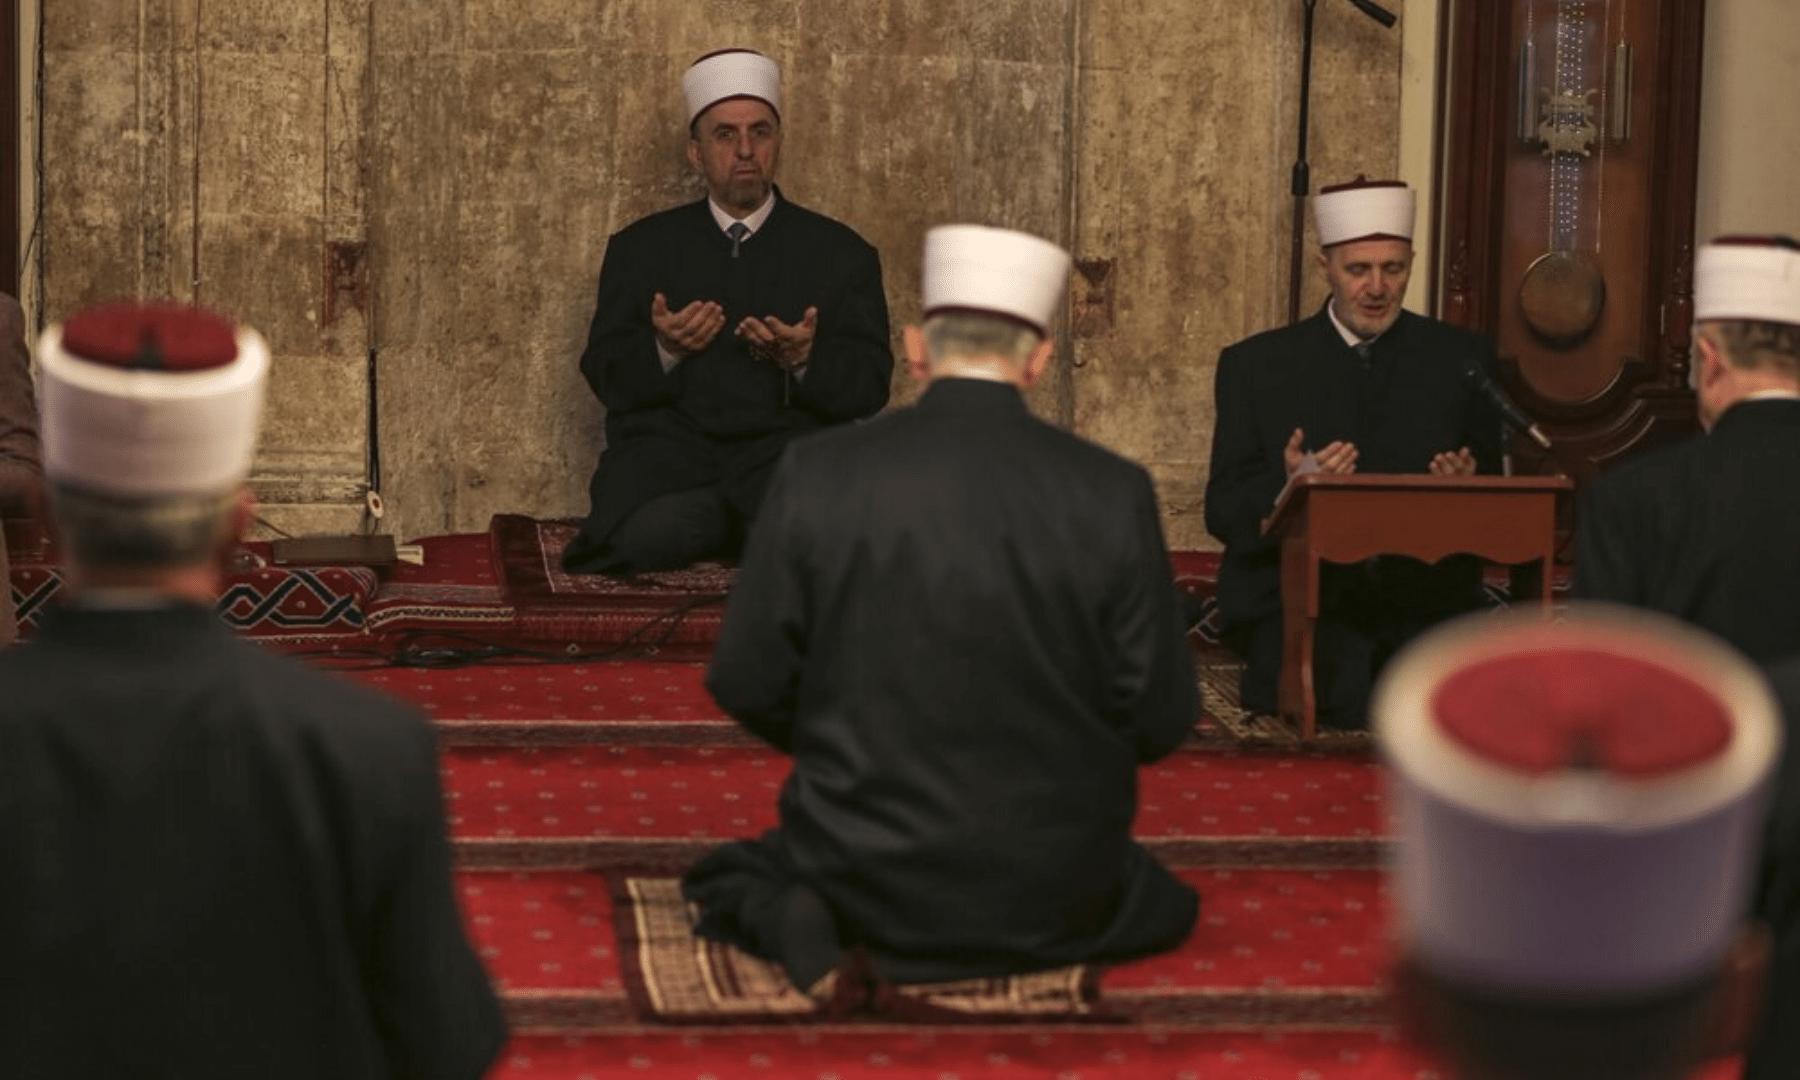 Kosovo's grand mufti Naim Ternava, left rear, leads the Eidul Fitr prayer at the grand mosque in Pristina, Kosovo. Kosovo's mosques have been closed since March 14 because of the spread of Covid-19. — AP